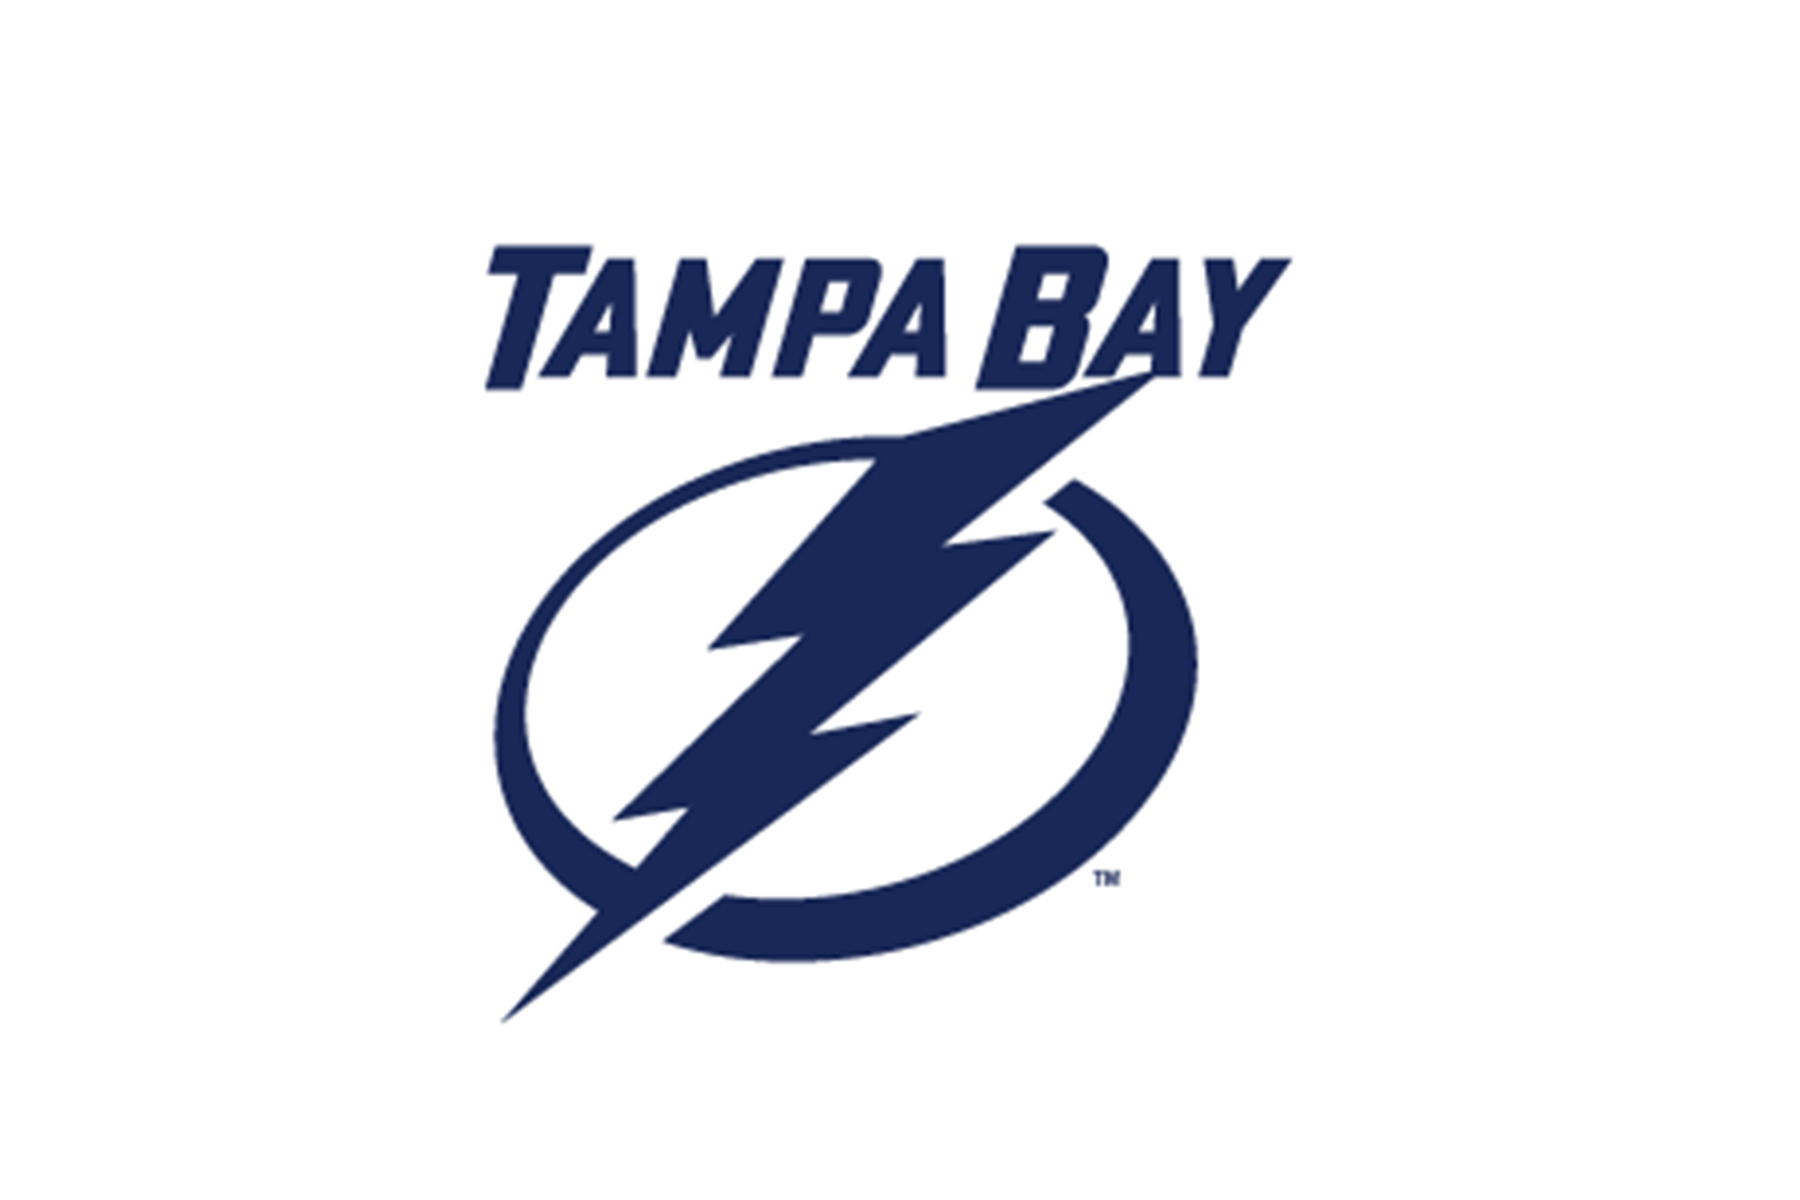 Tampa Bay Lightning.jpg